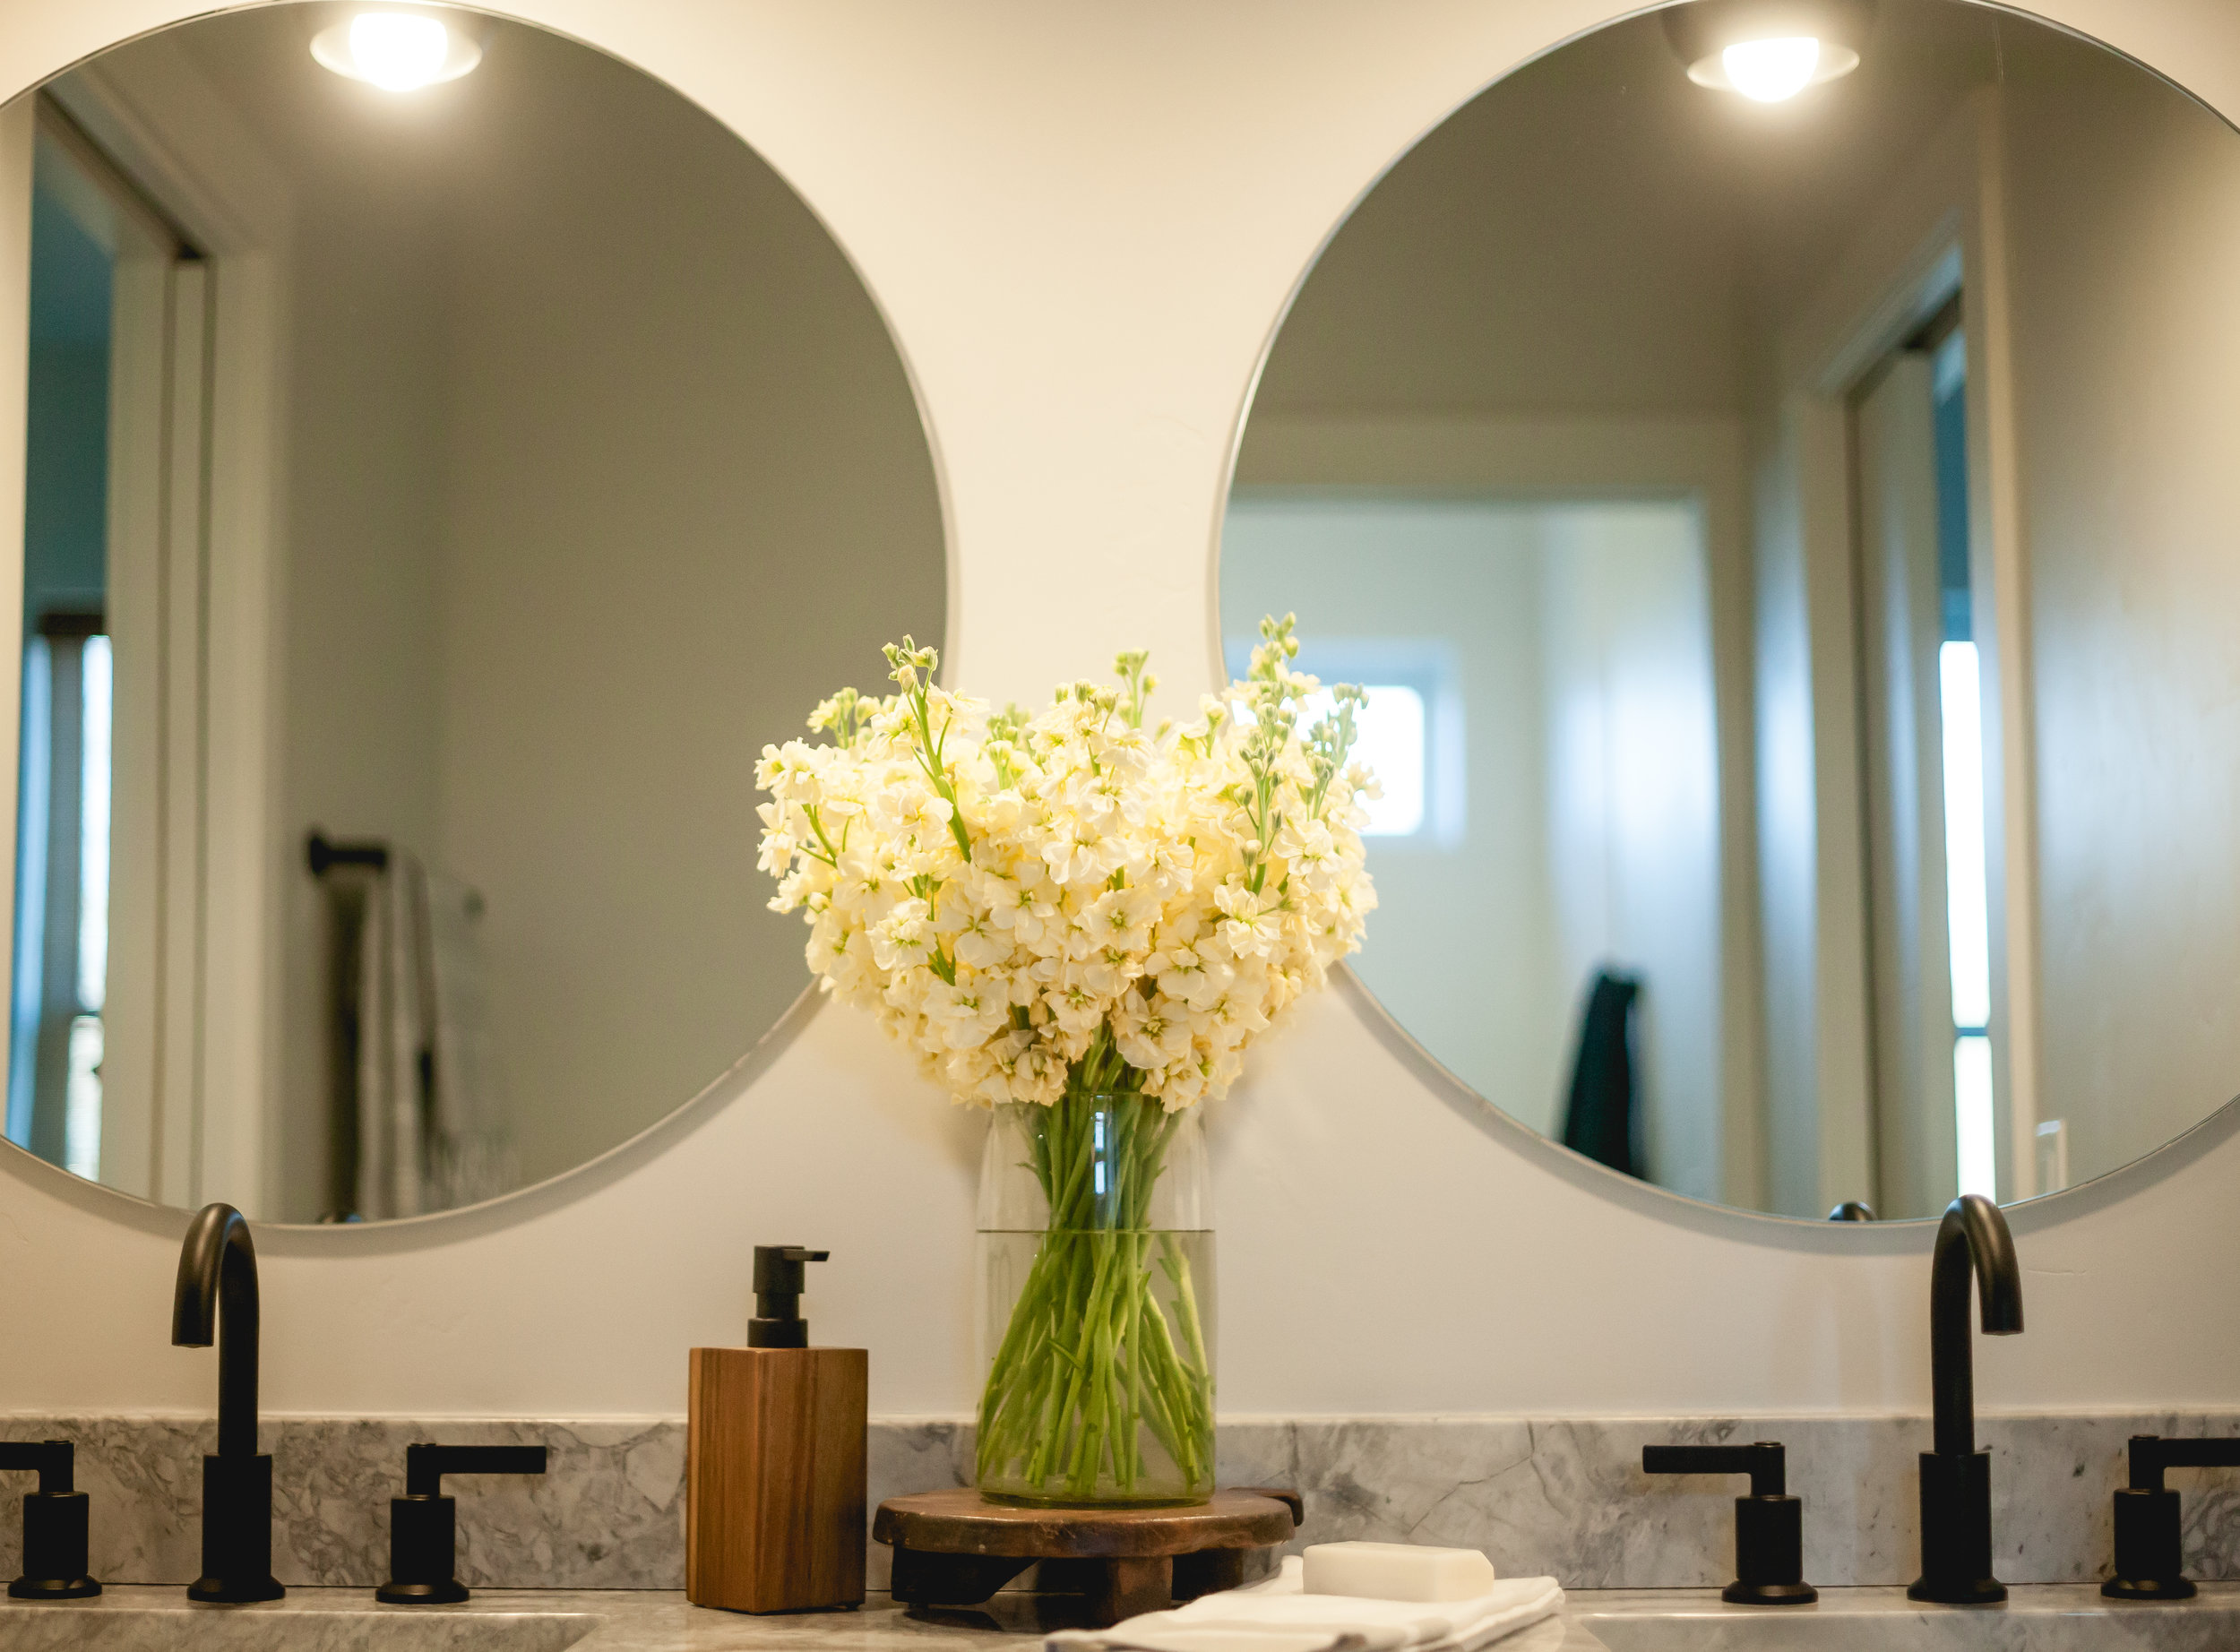 Upper bathroom Details-1-2.jpg